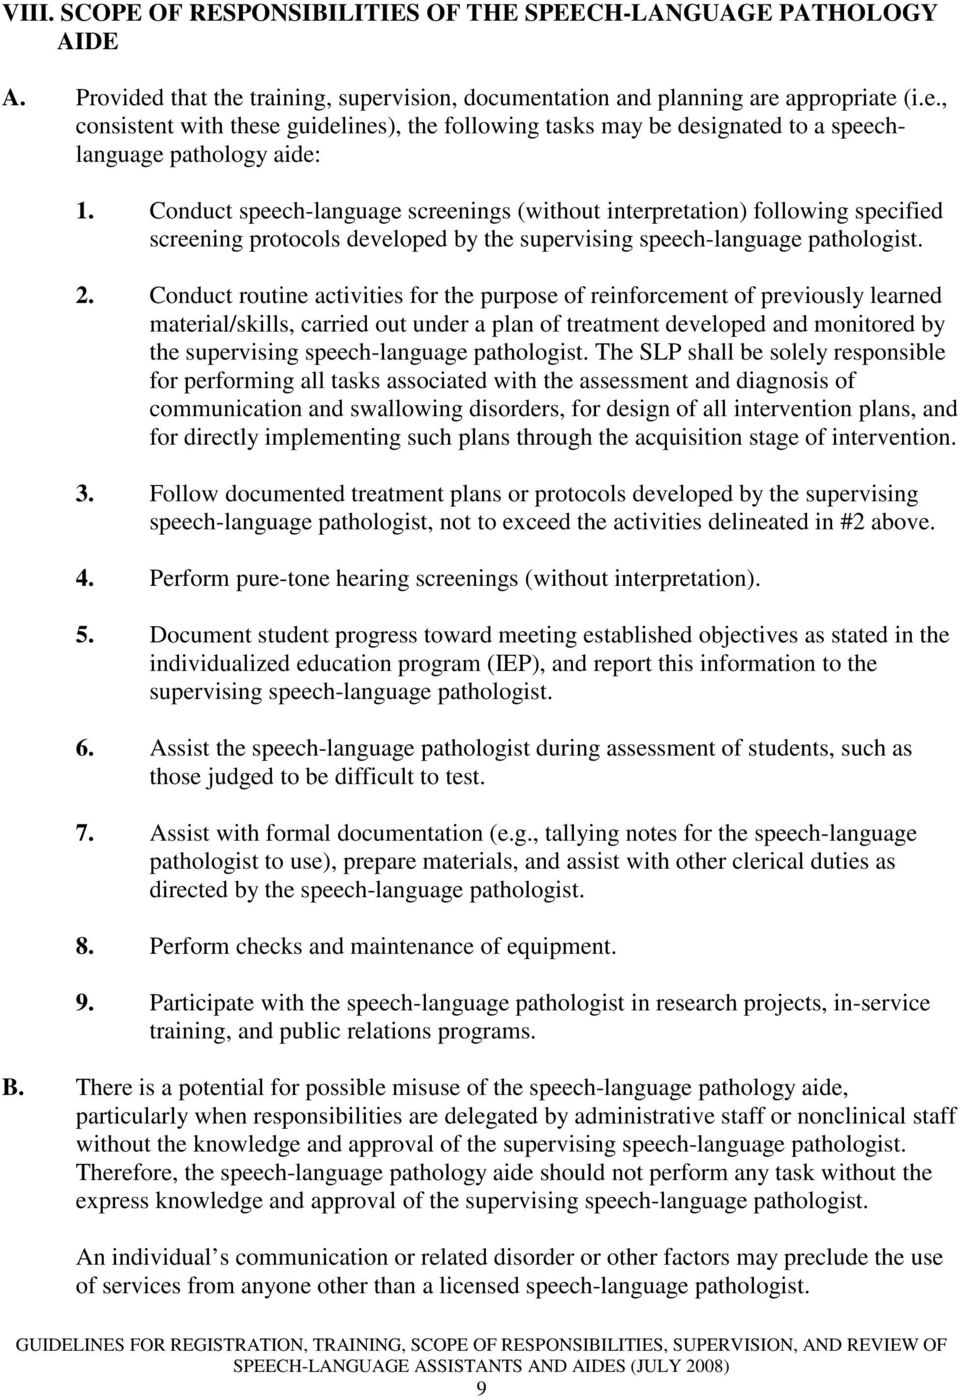 Conduct routine activities for the purpose of reinforcement of previously learned material/skills, carried out under a plan of treatment developed and monitored by the supervising speech-language